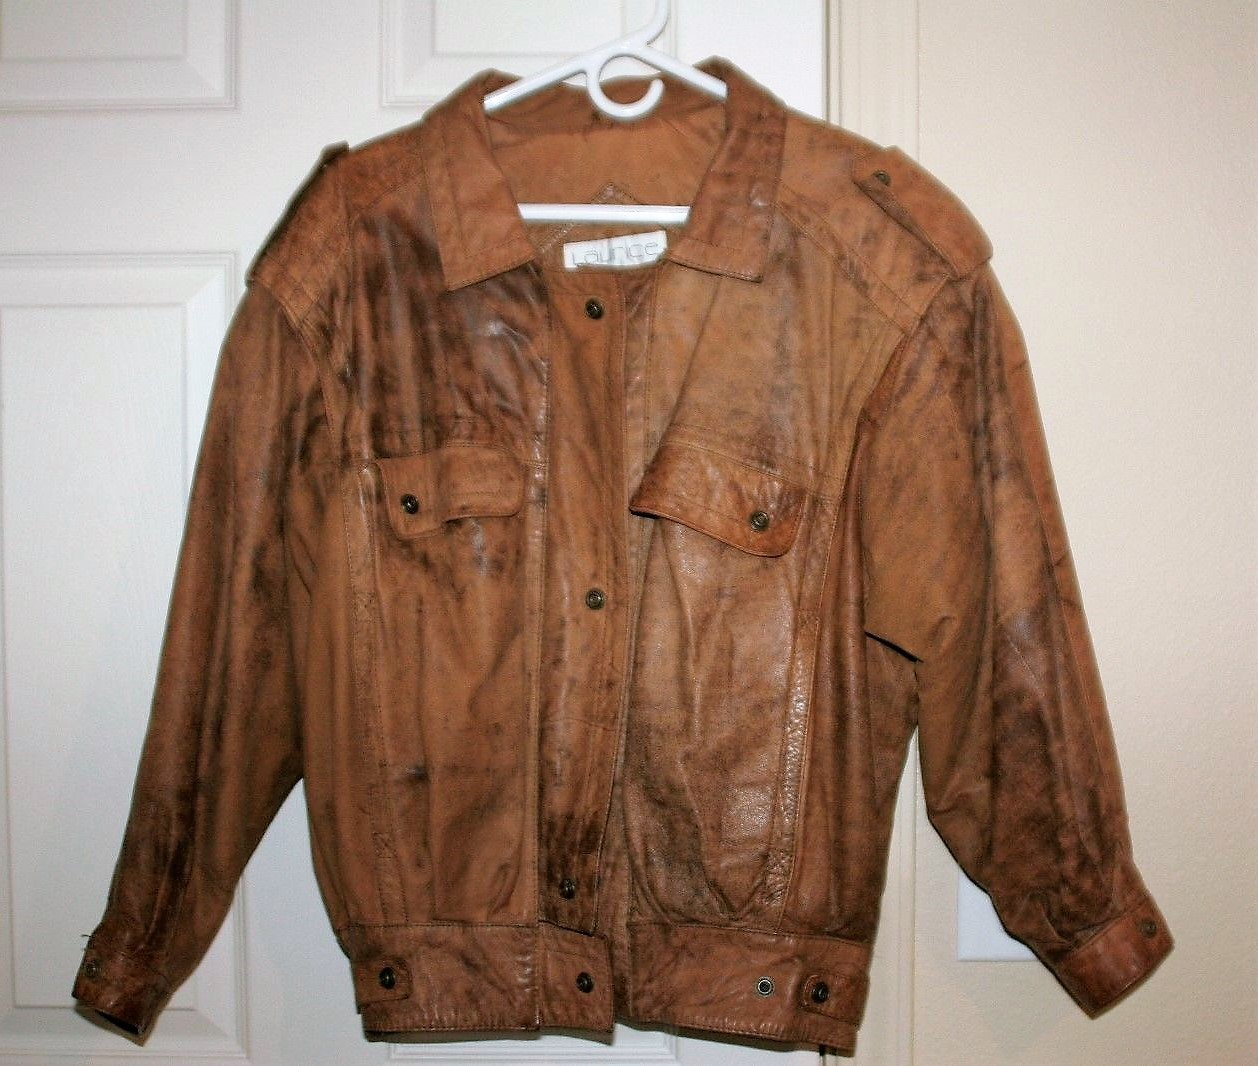 Primary image for Laurice Taffeta Genuine Leather Bomber Type Jacket Men's Size M